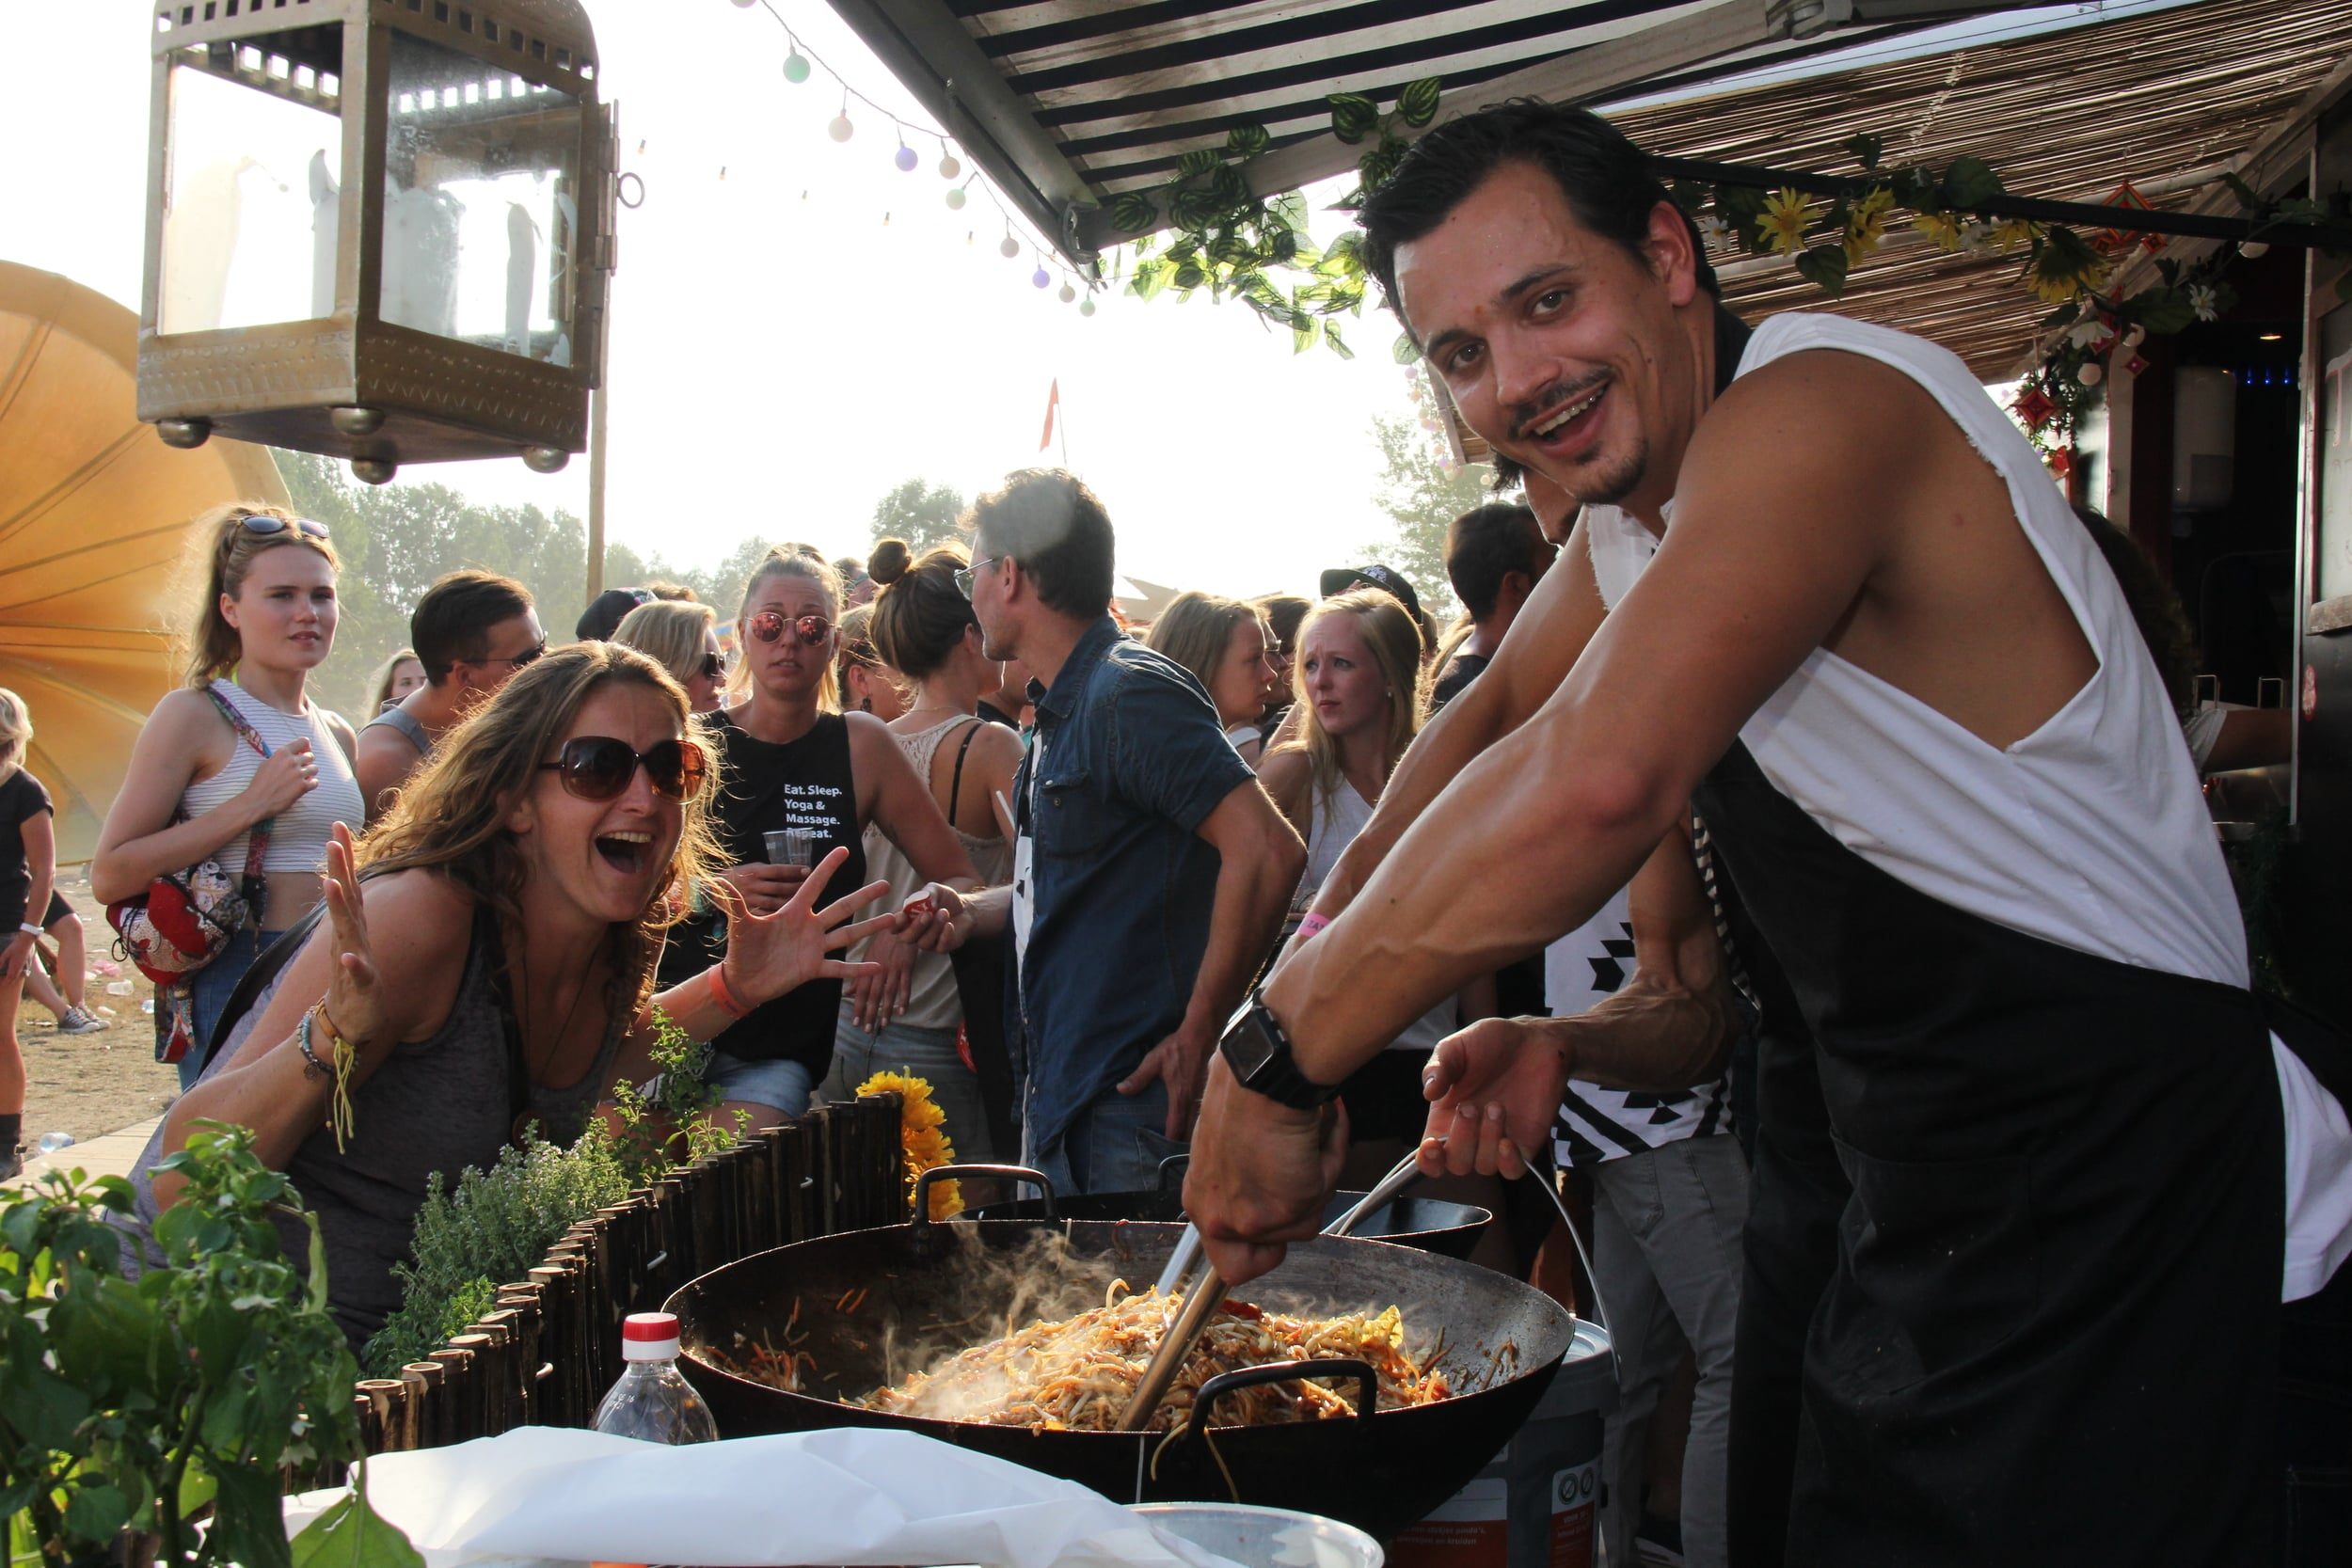 Live cooking @ Solar festival